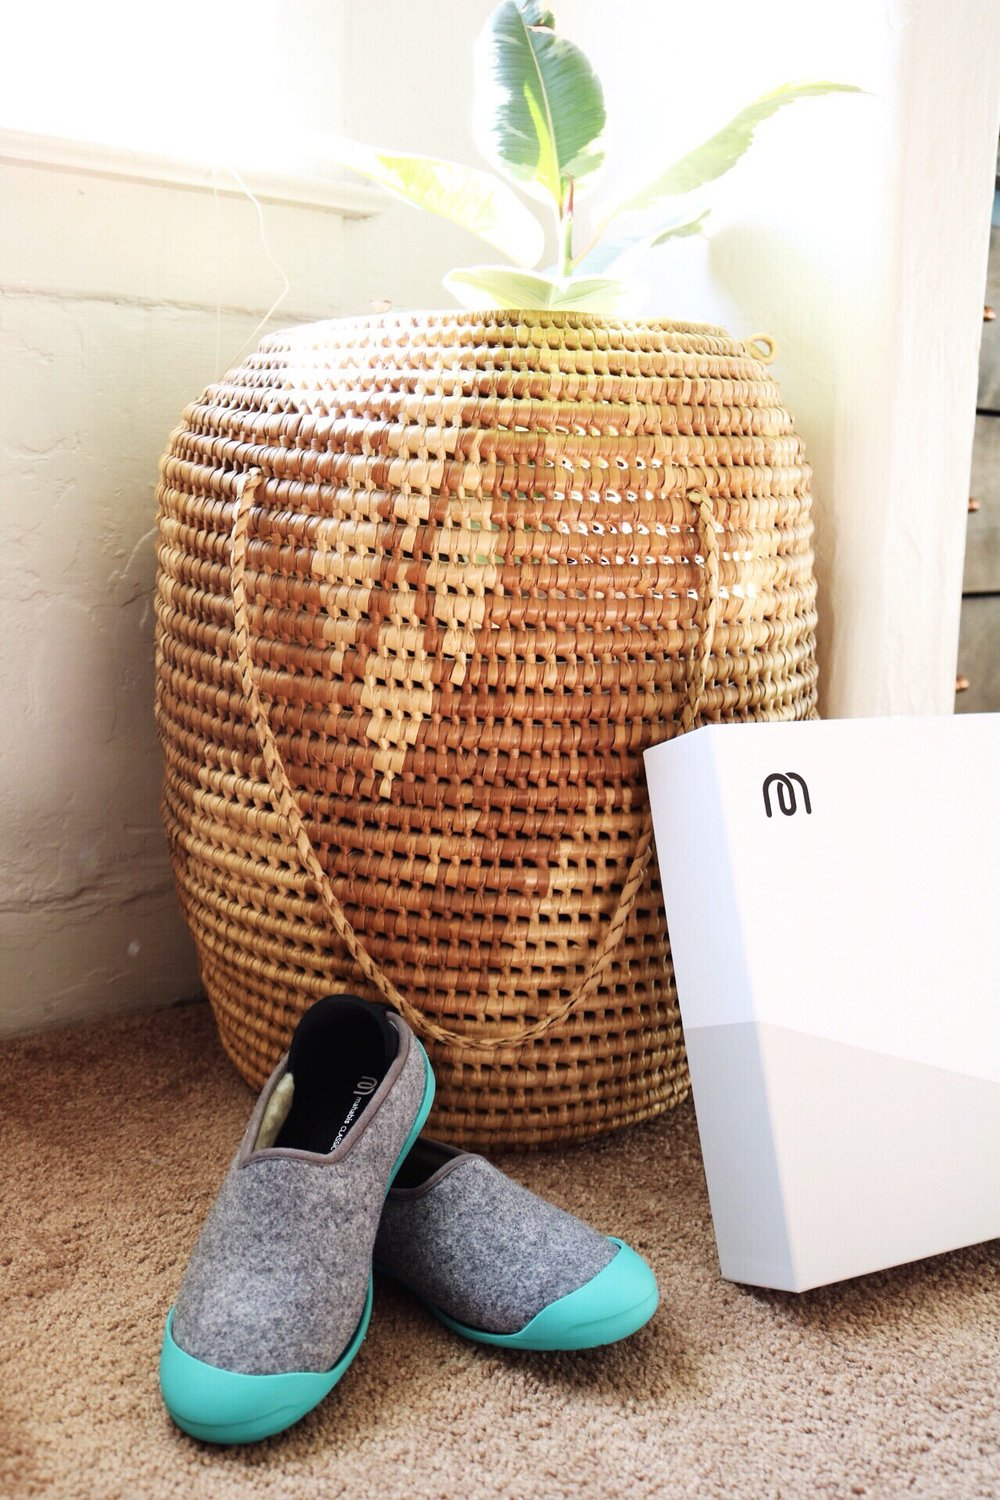 Mahabis slippers, straw basket